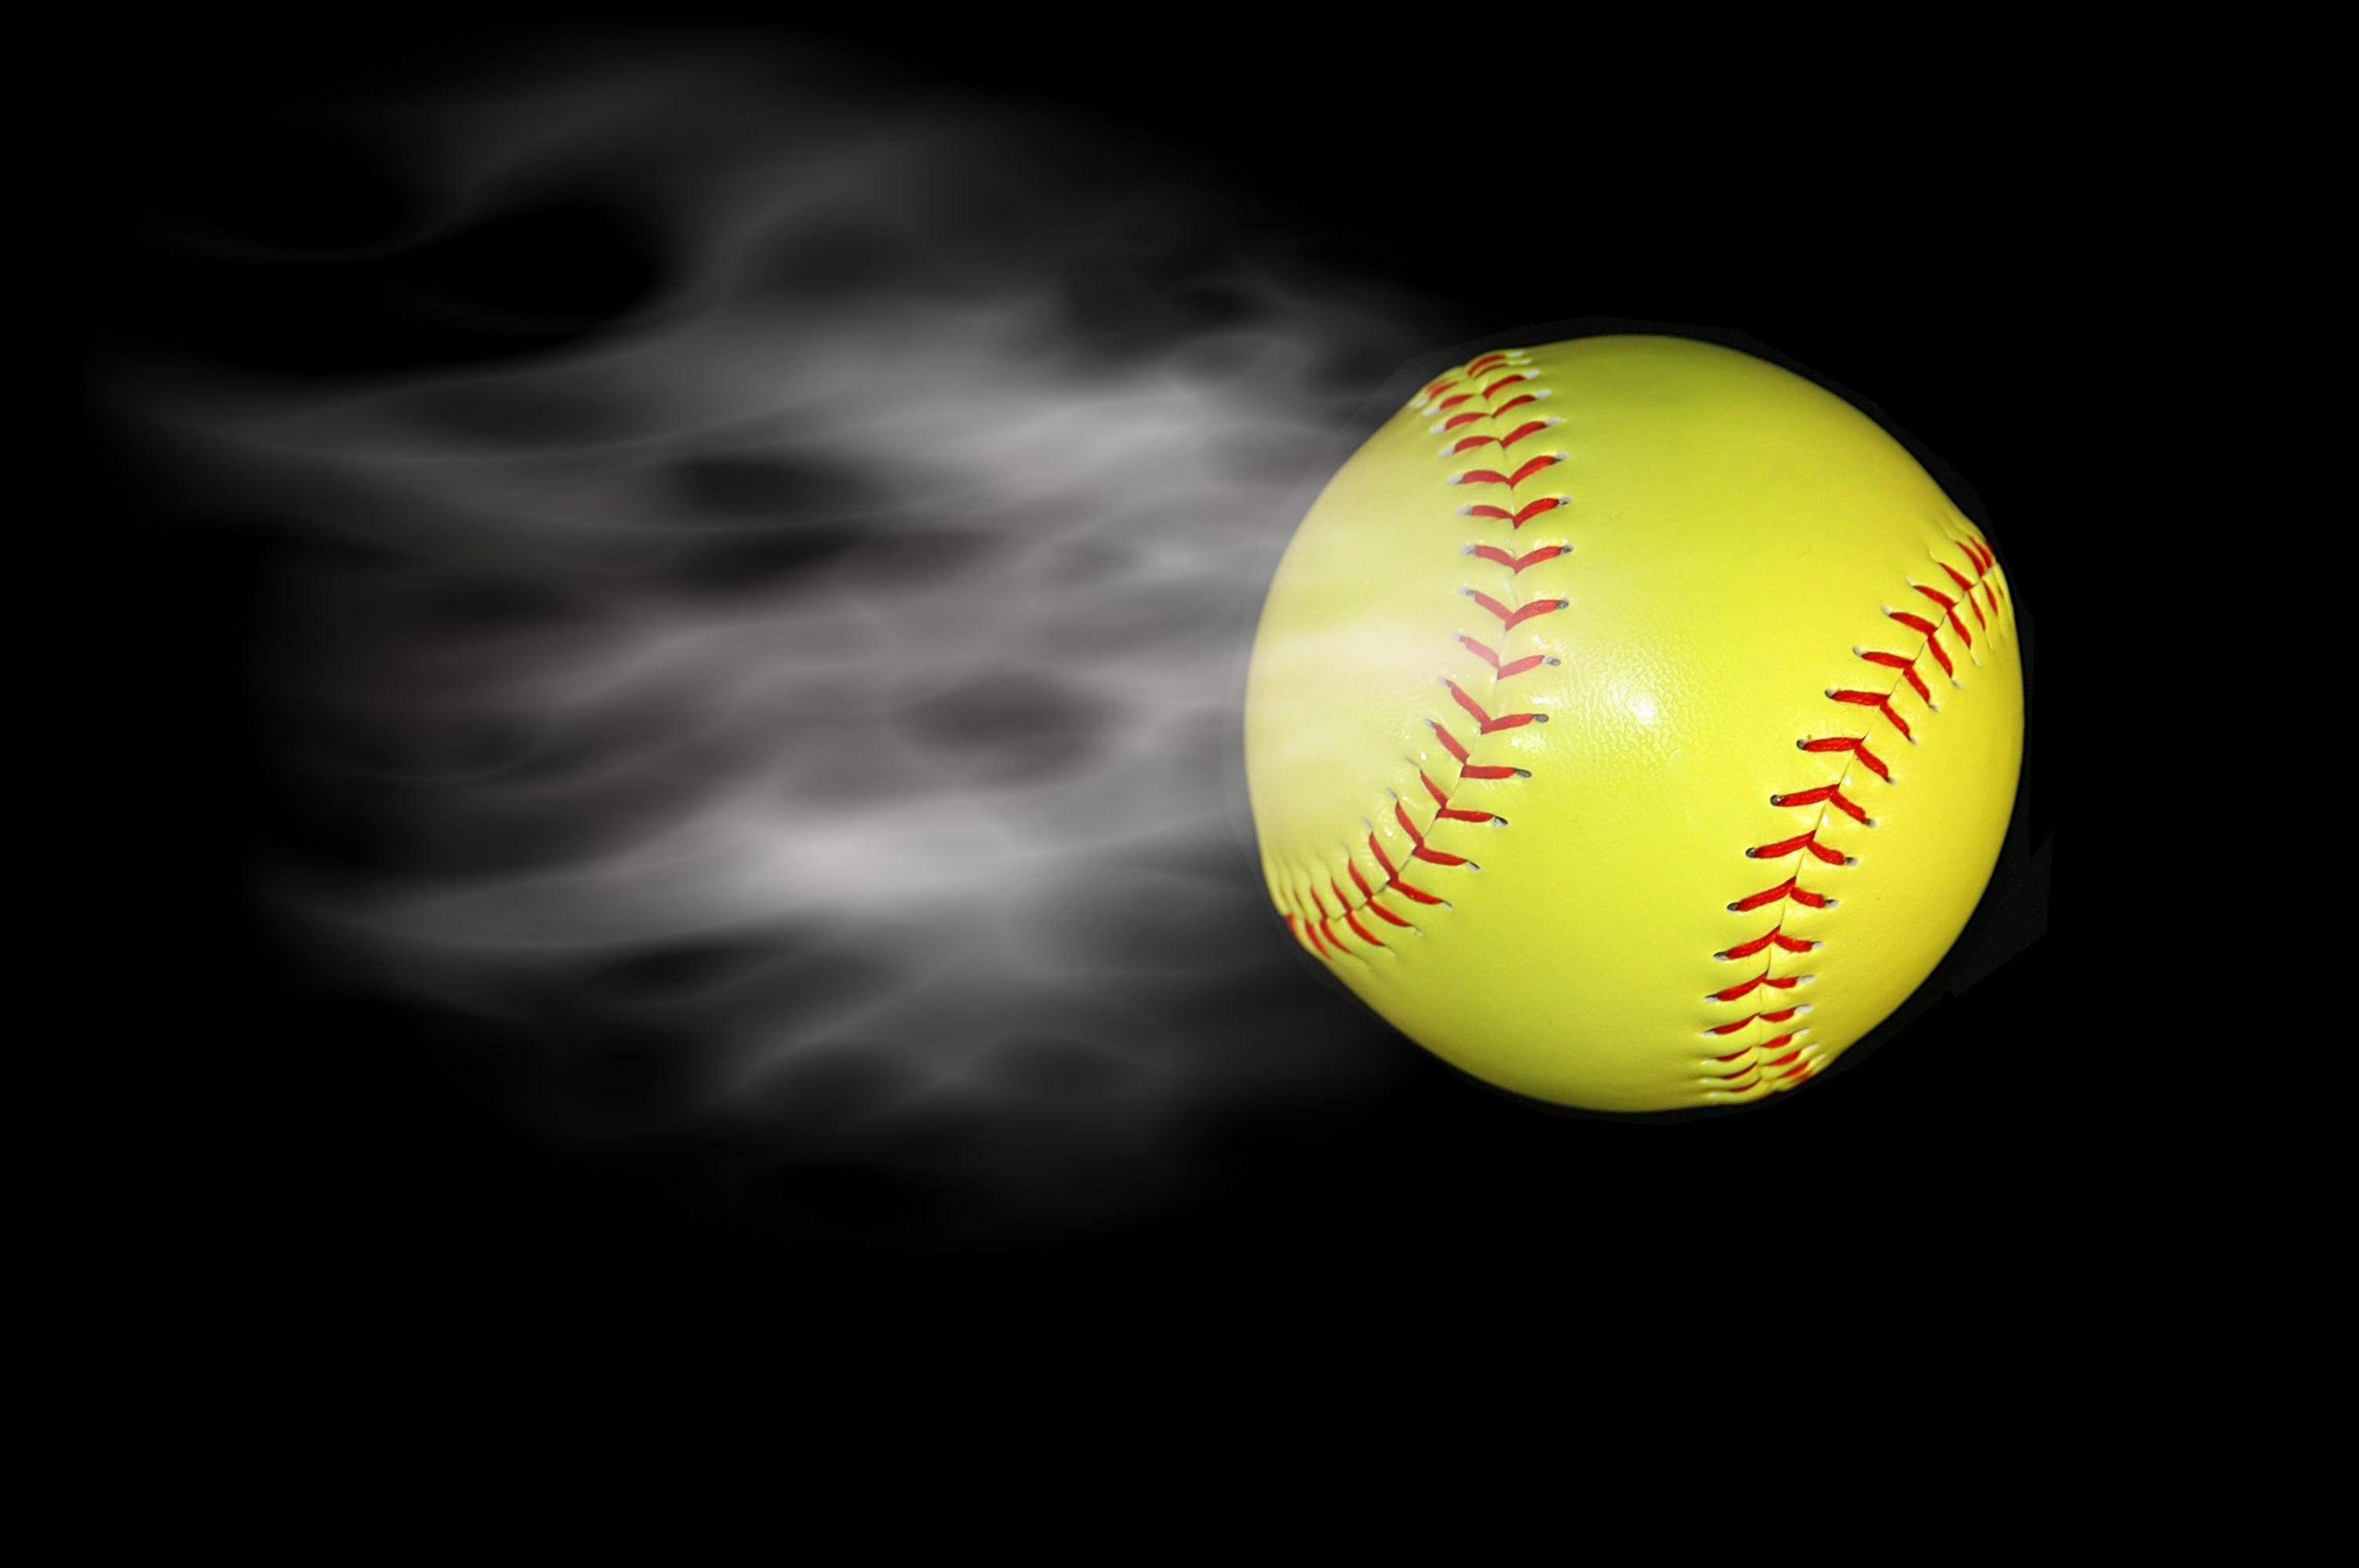 38 Softball Backgrounds Download Free Hd Backgrounds: Softball Wallpapers (52+ Images